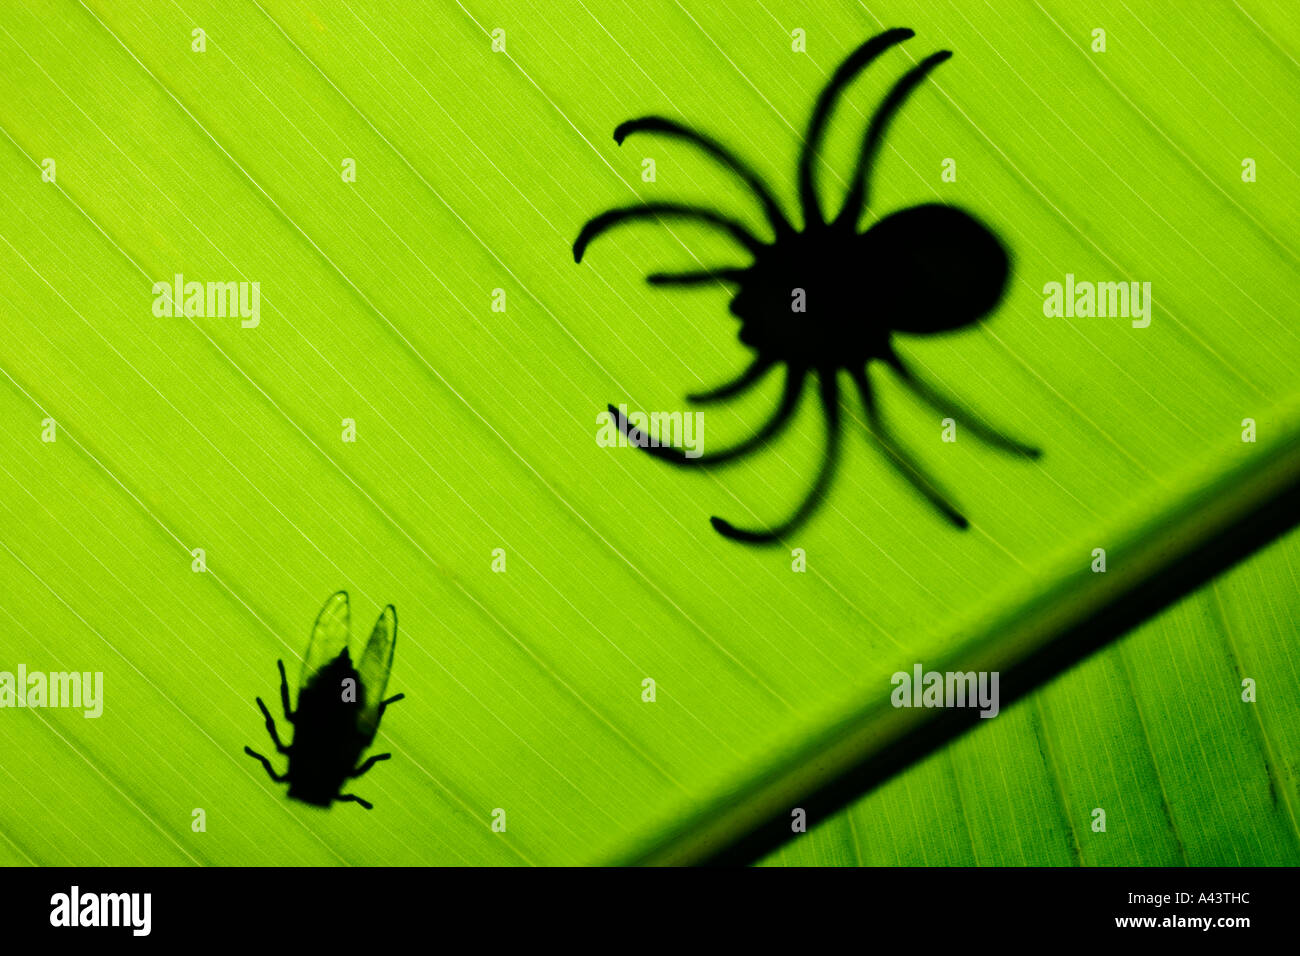 Fly and spider in silhouette on banana leaf Studio photograph - Stock Image